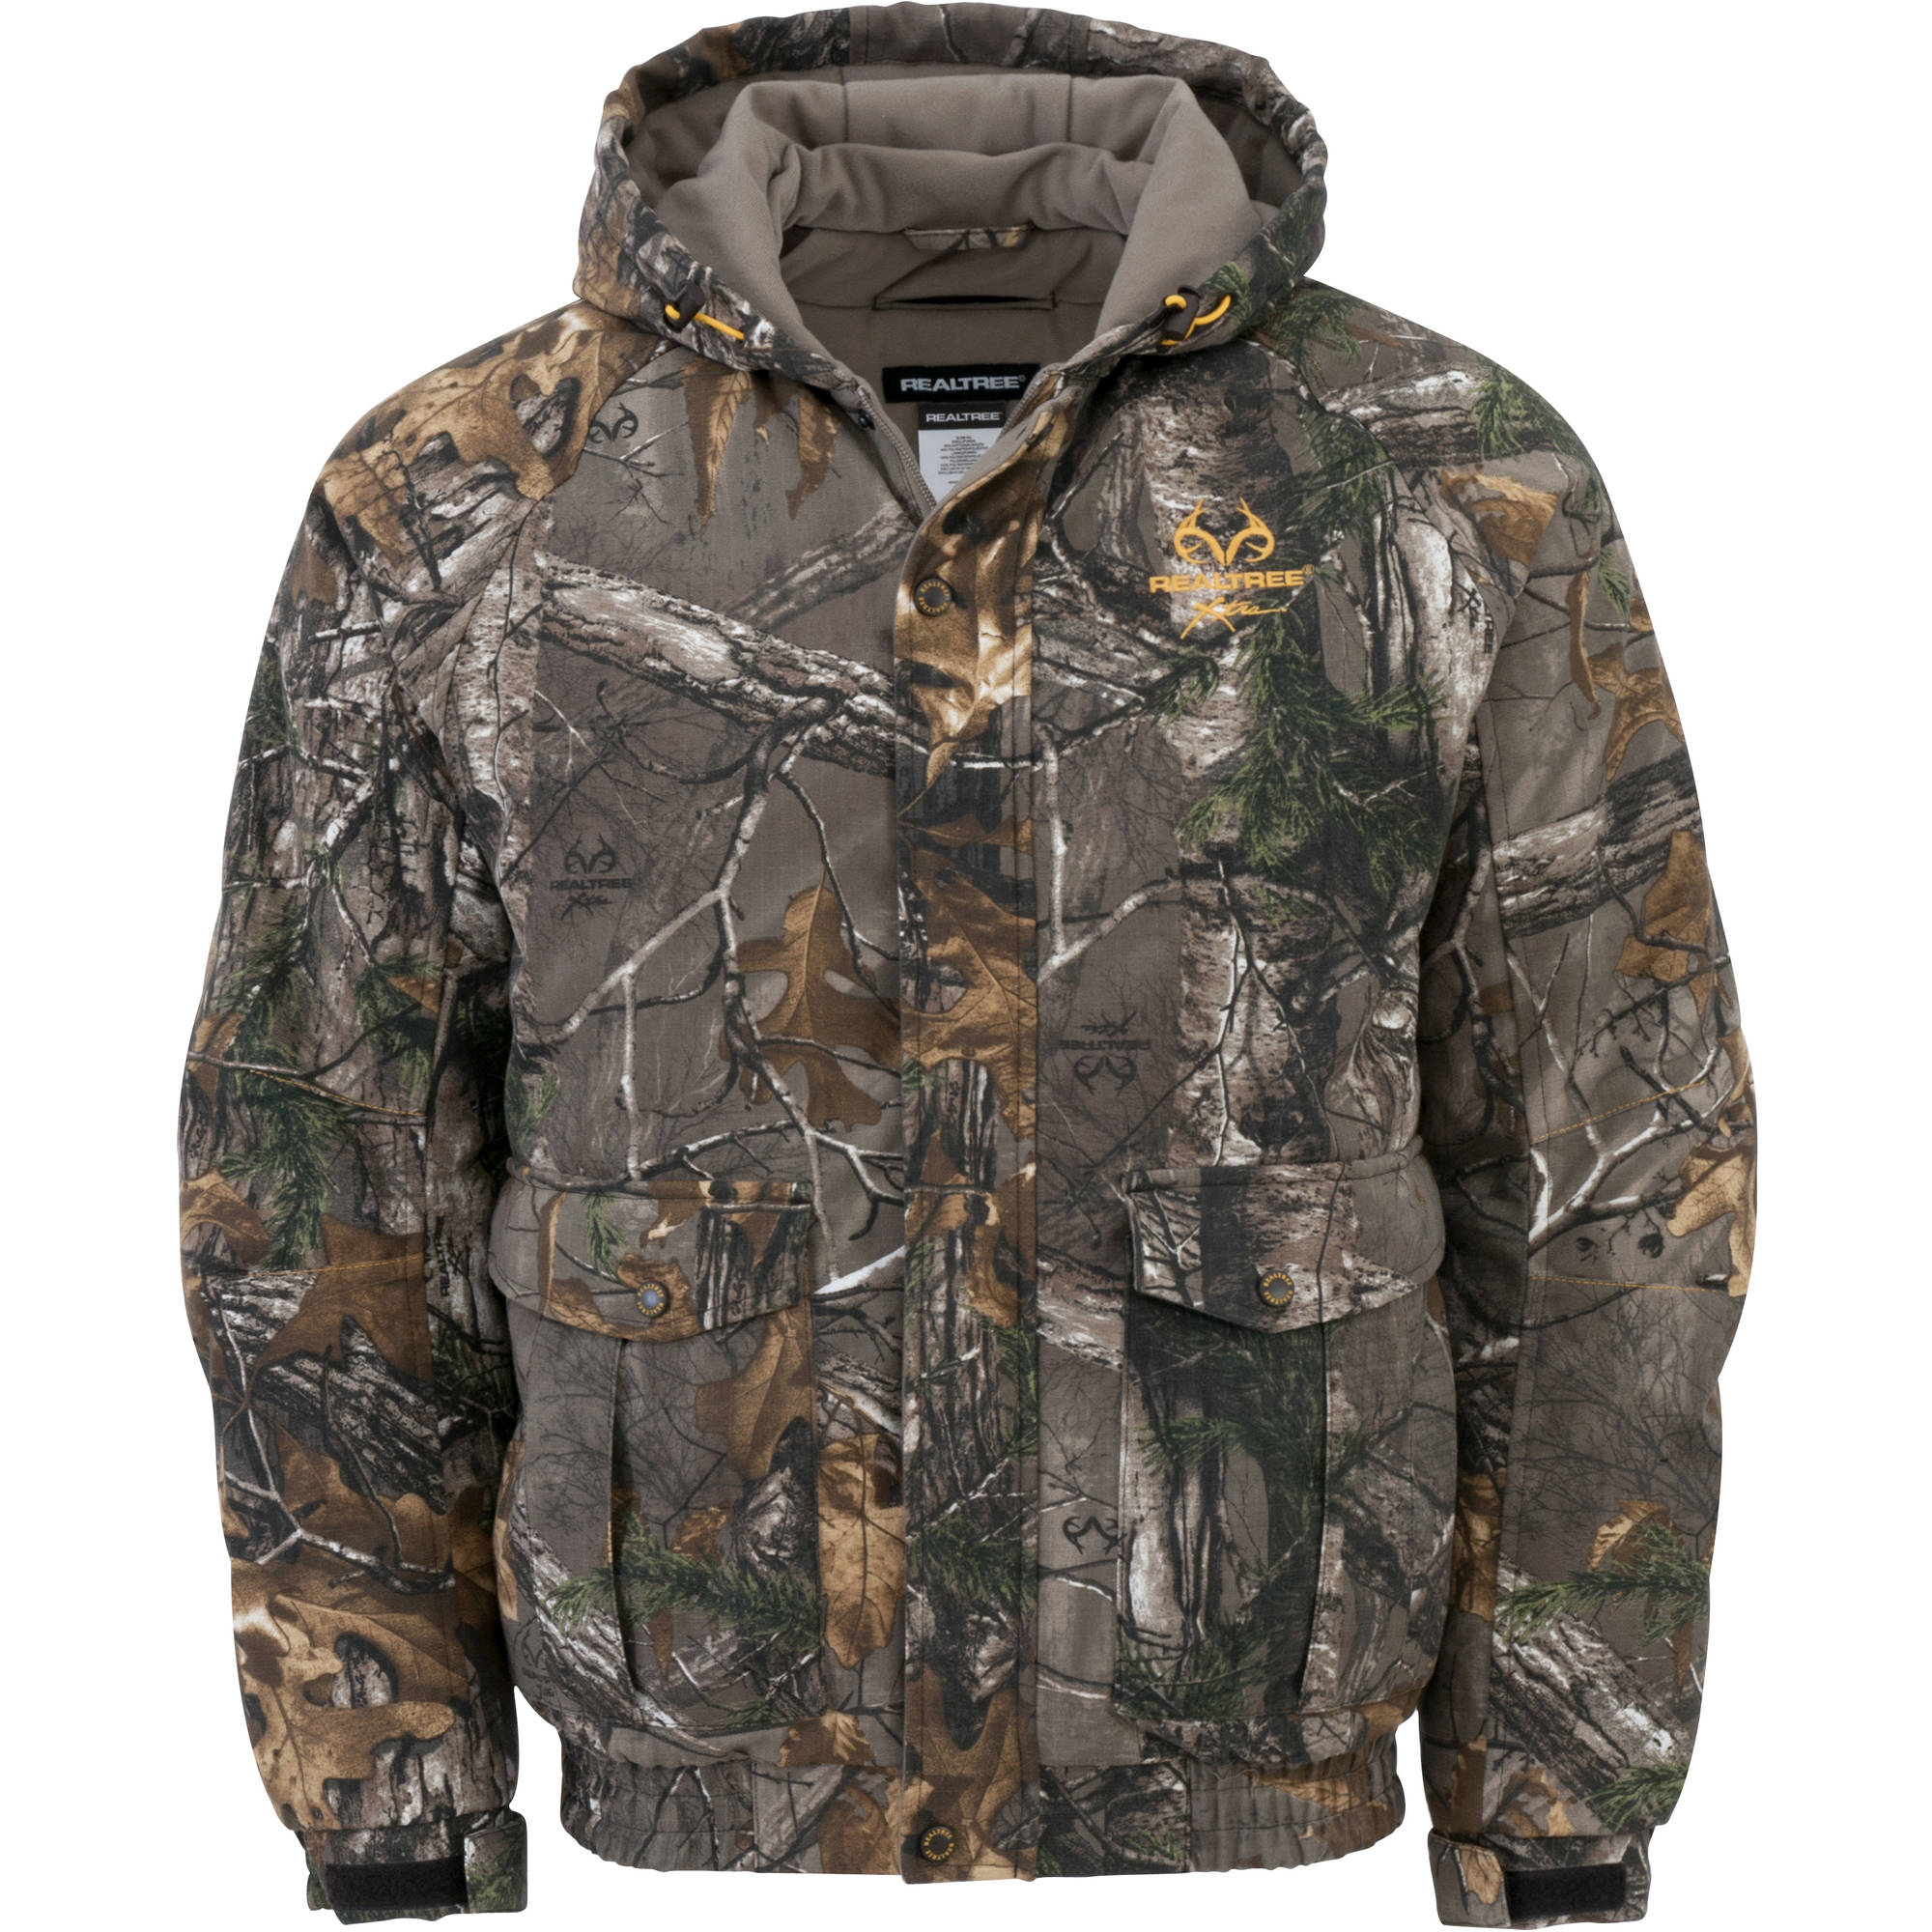 Men's Bomber Jacket, Realtree